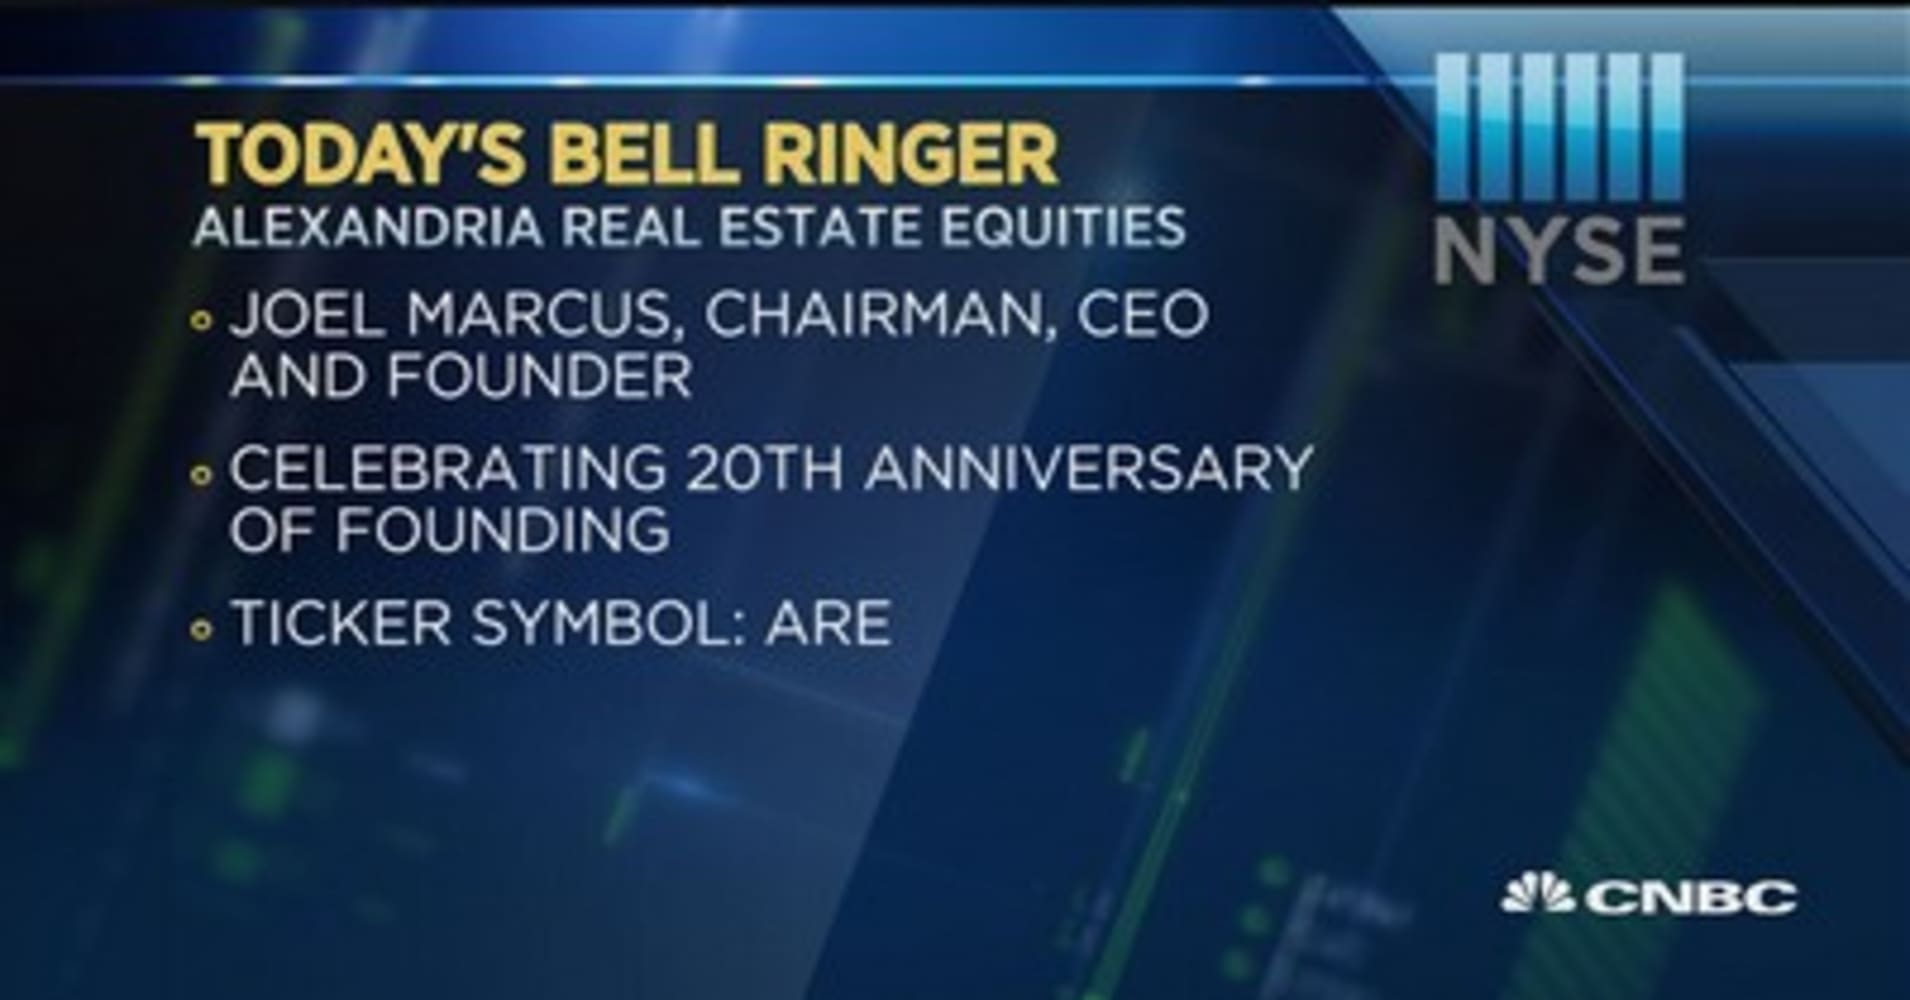 Todays bell ringer may 22 2017 buycottarizona Images